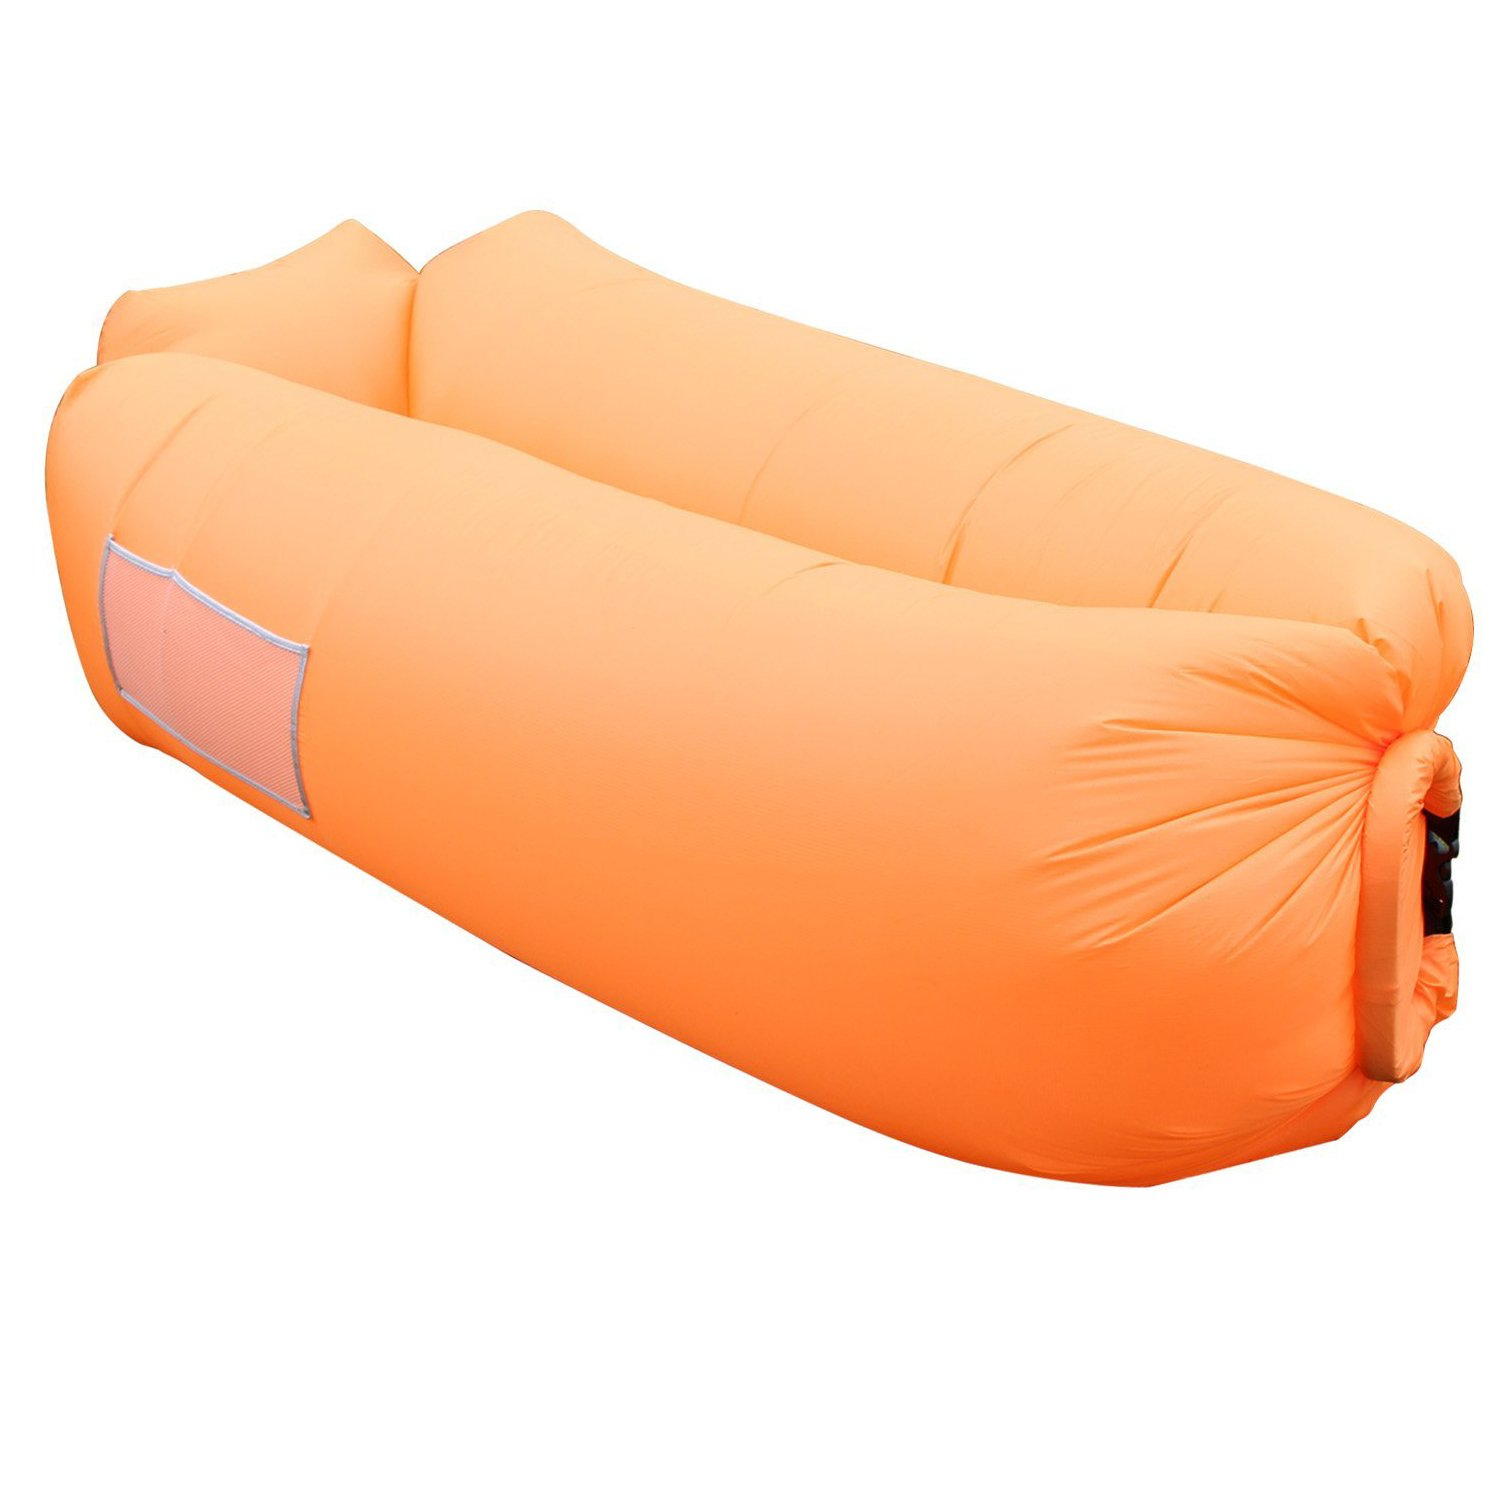 HELESIN Inflatable Lounger Air Couch,Portable Hammock Waterproof Anti-Air Leaking Sofa for Home Lakeside Beach Traveling Camping Picnics Festivals by HELESIN